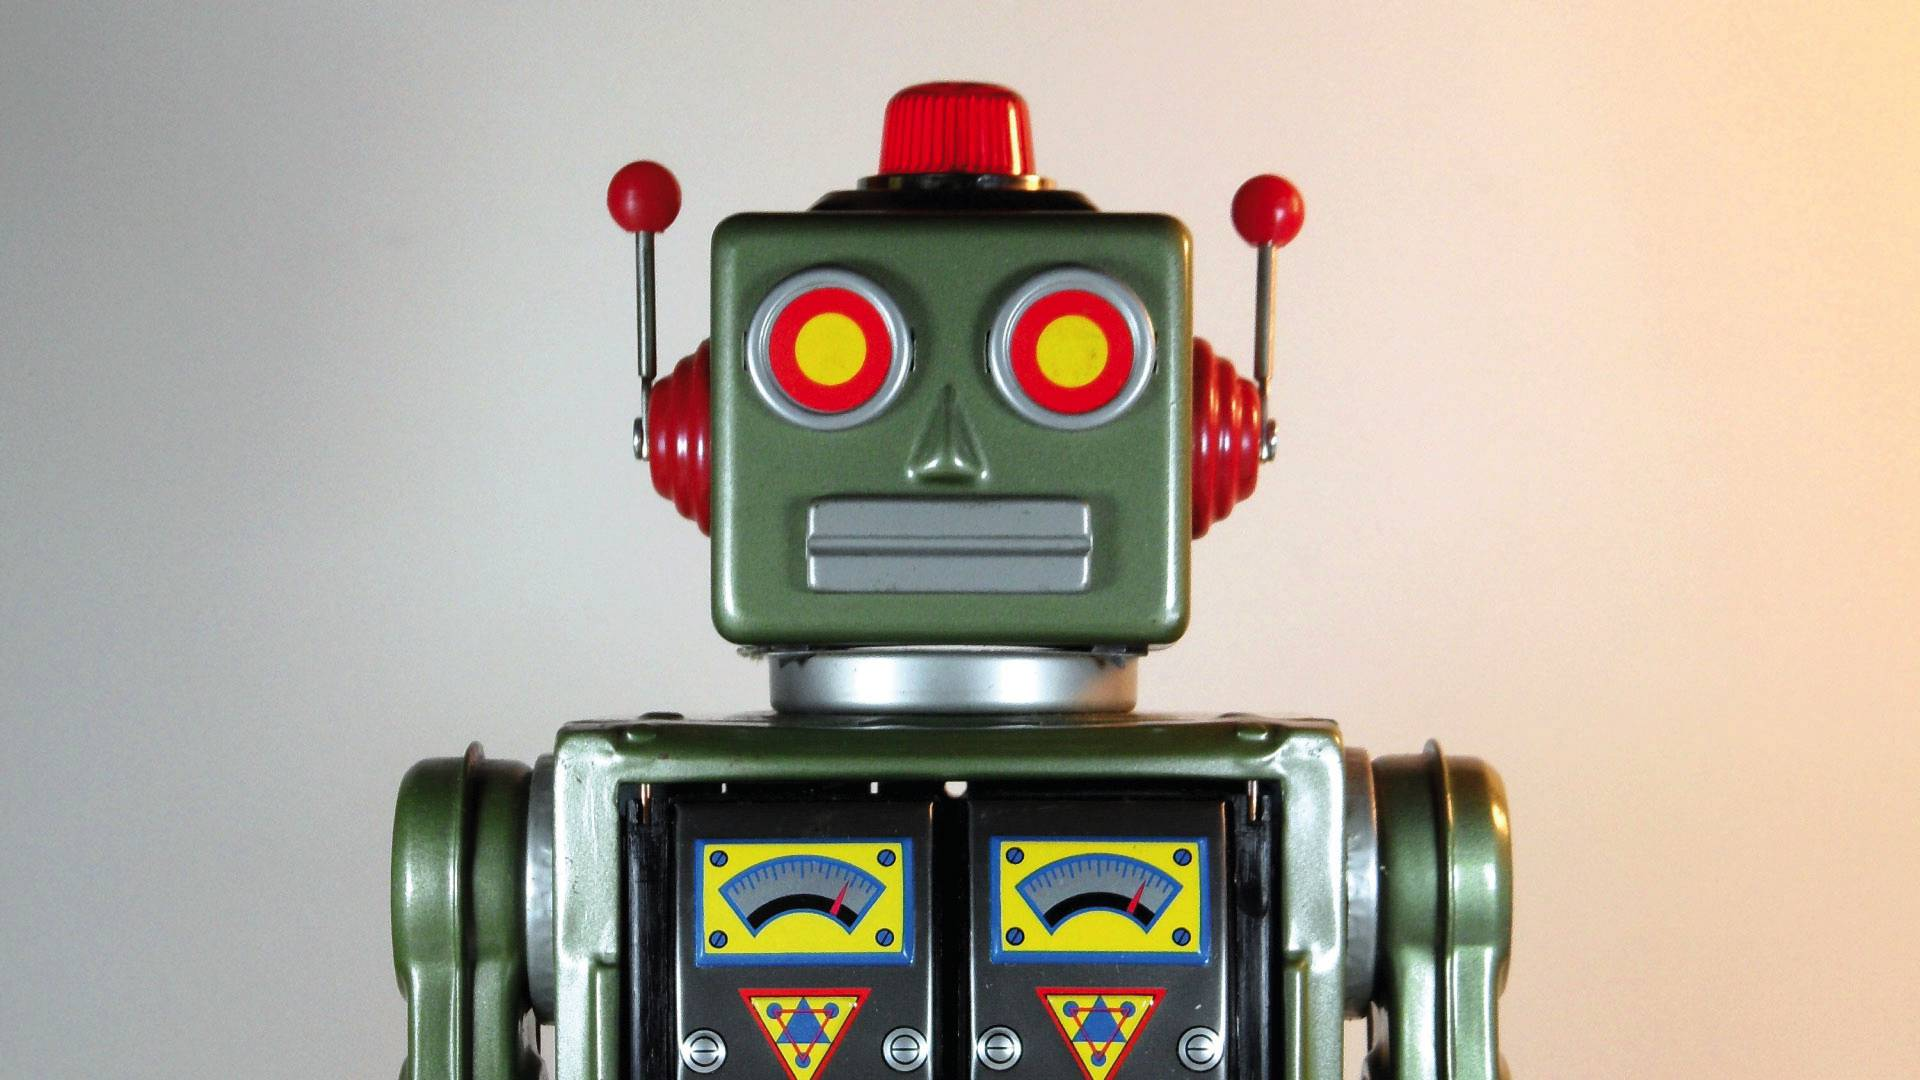 Will Robo-Advisors disrupt the $30 Trillion Wealth Management Industry?